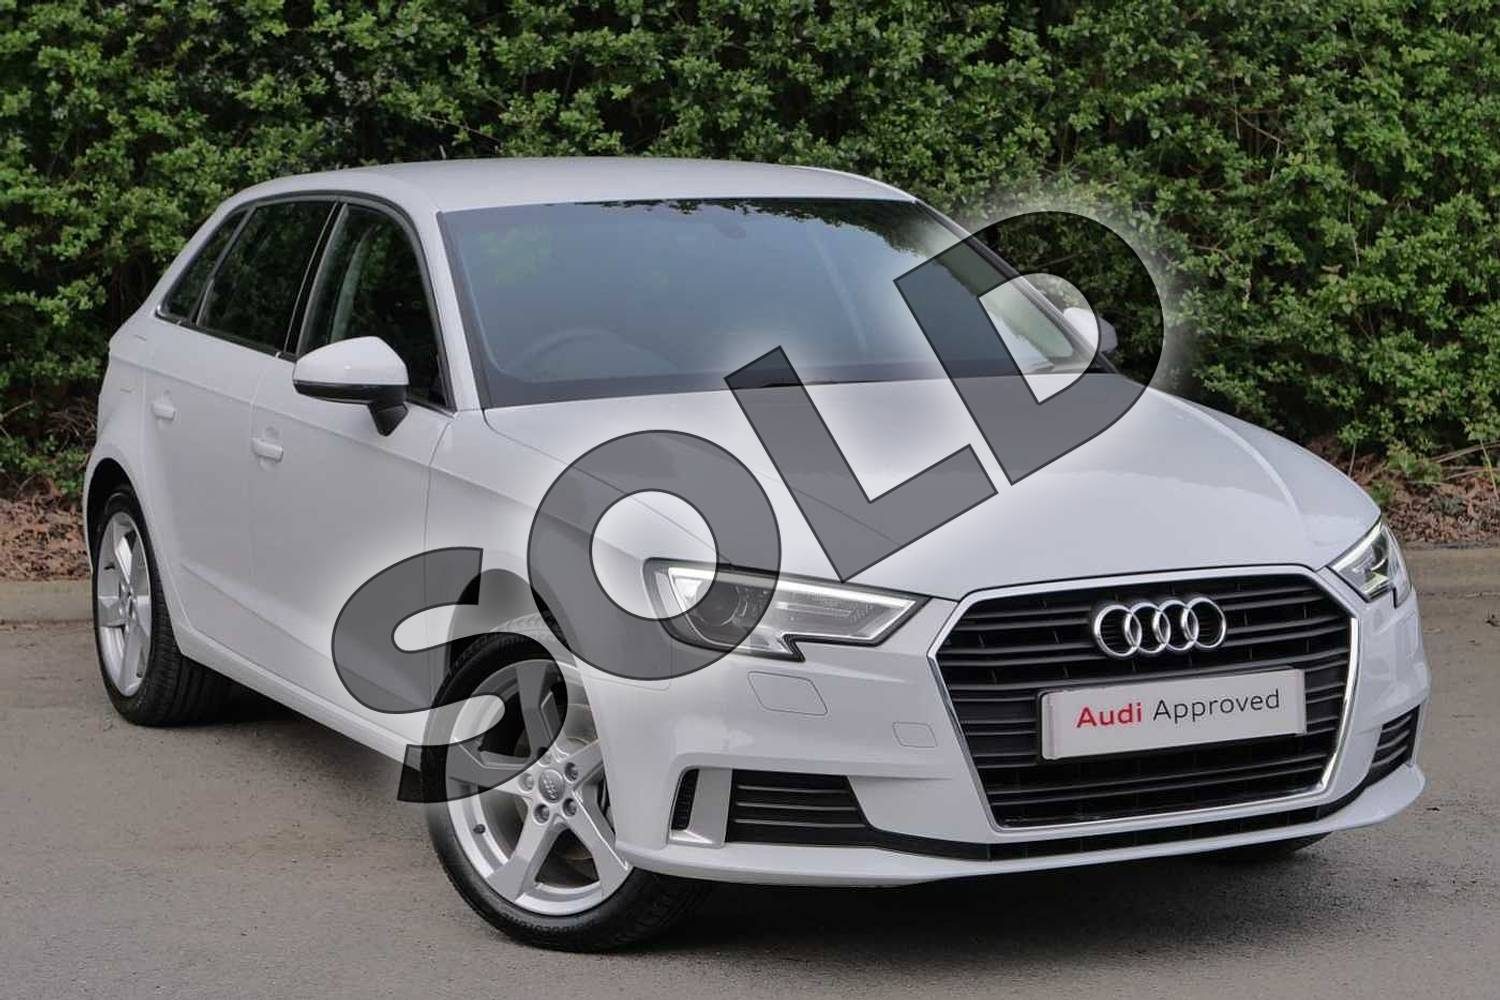 2019 Audi A3 Sportback 35 TFSI Sport 5dr in Glacier White Metallic at Worcester Audi